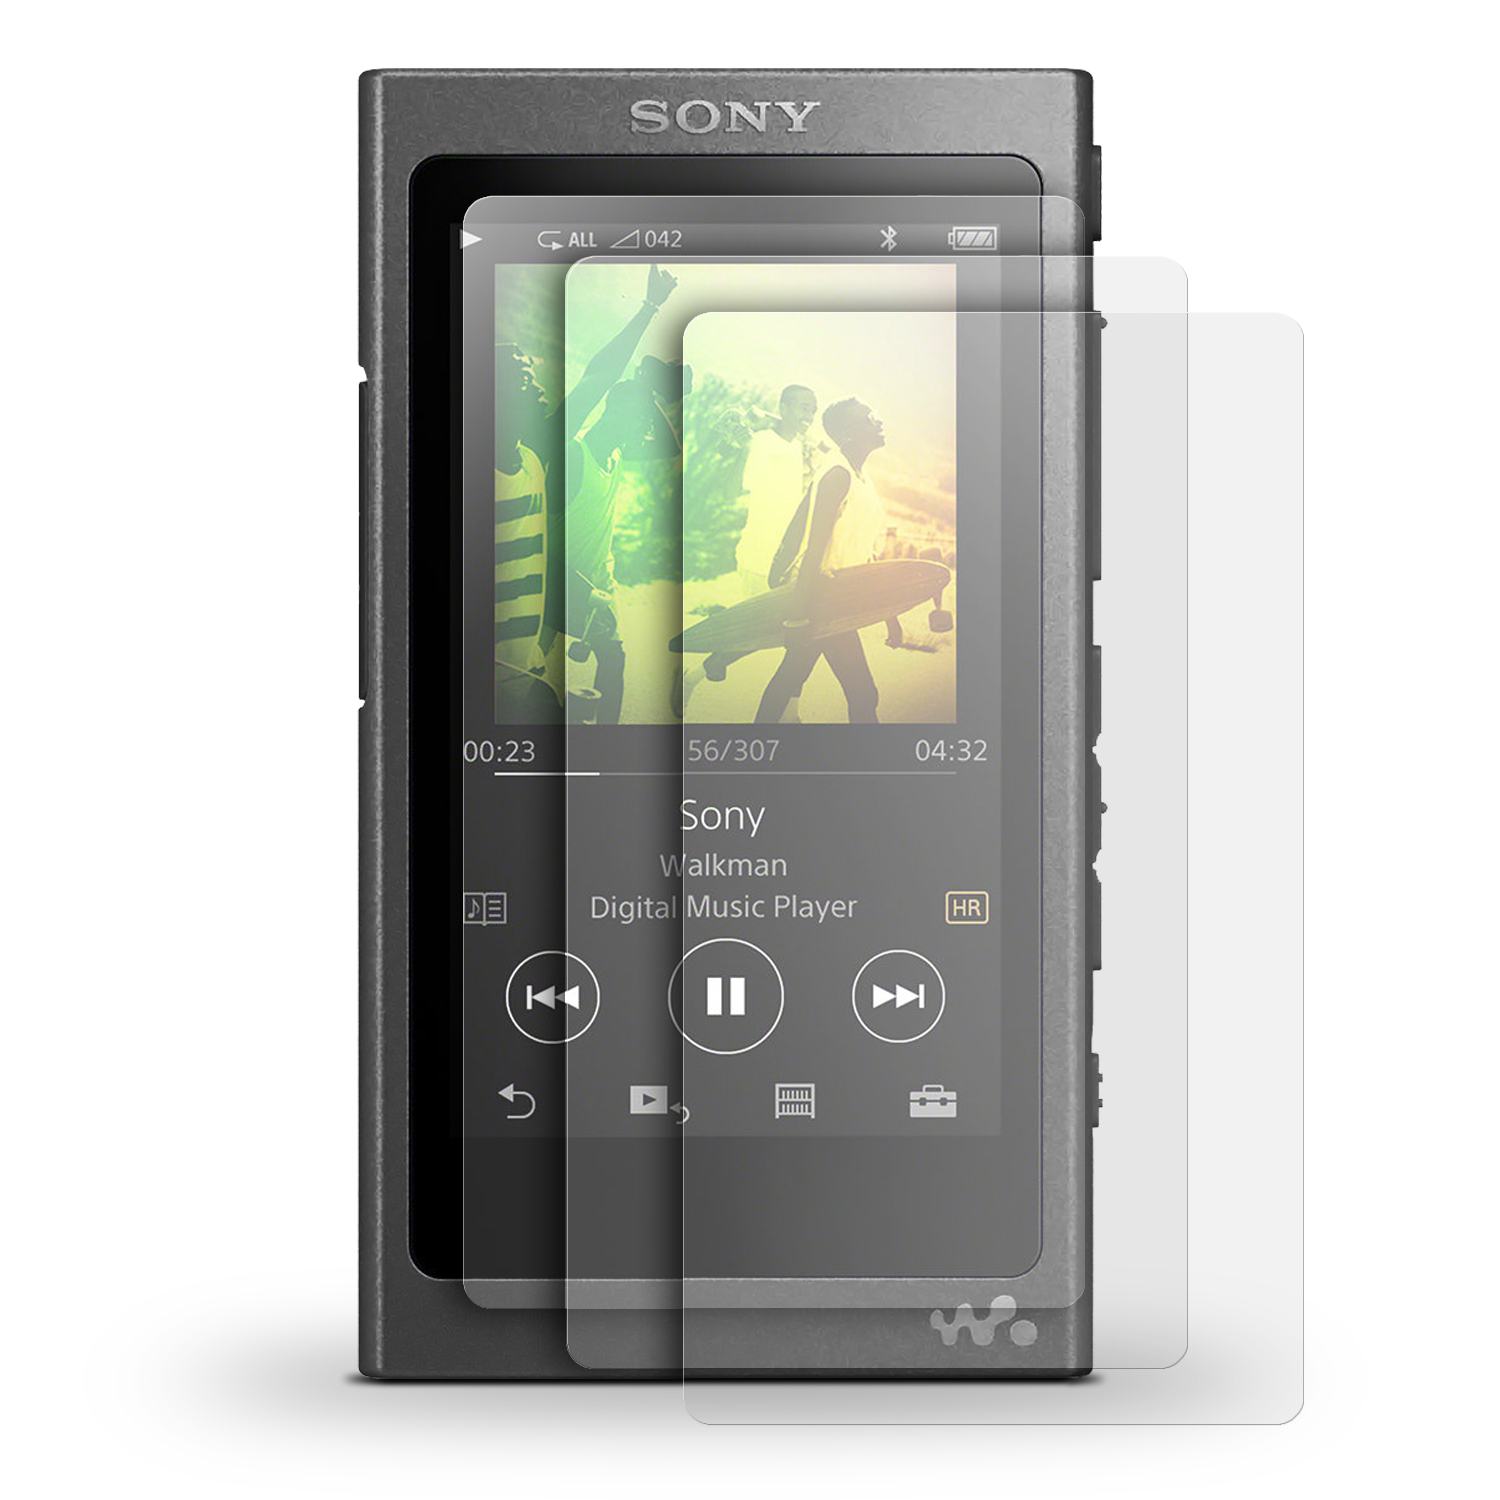 iGadgitz 3x Pack of Screen Protector for Sony Walkman NW-A35 MP3 Player Clear Protective Film